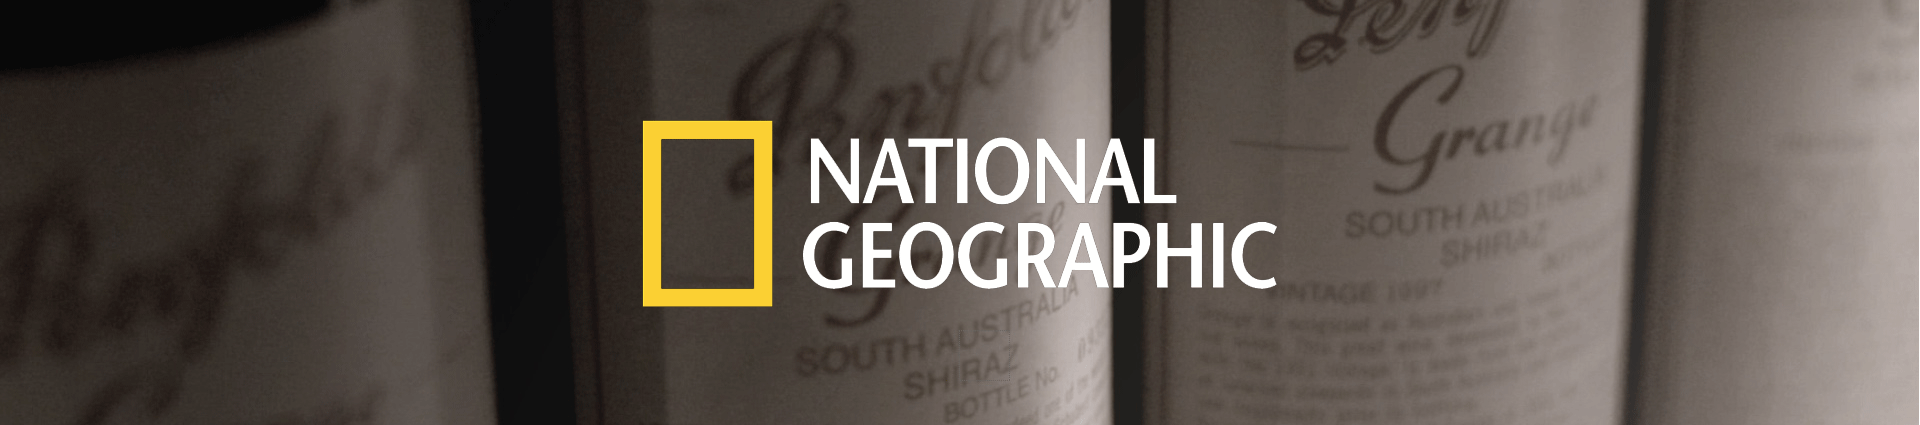 Three Grange labels close up. National Geographic logo is overlaid